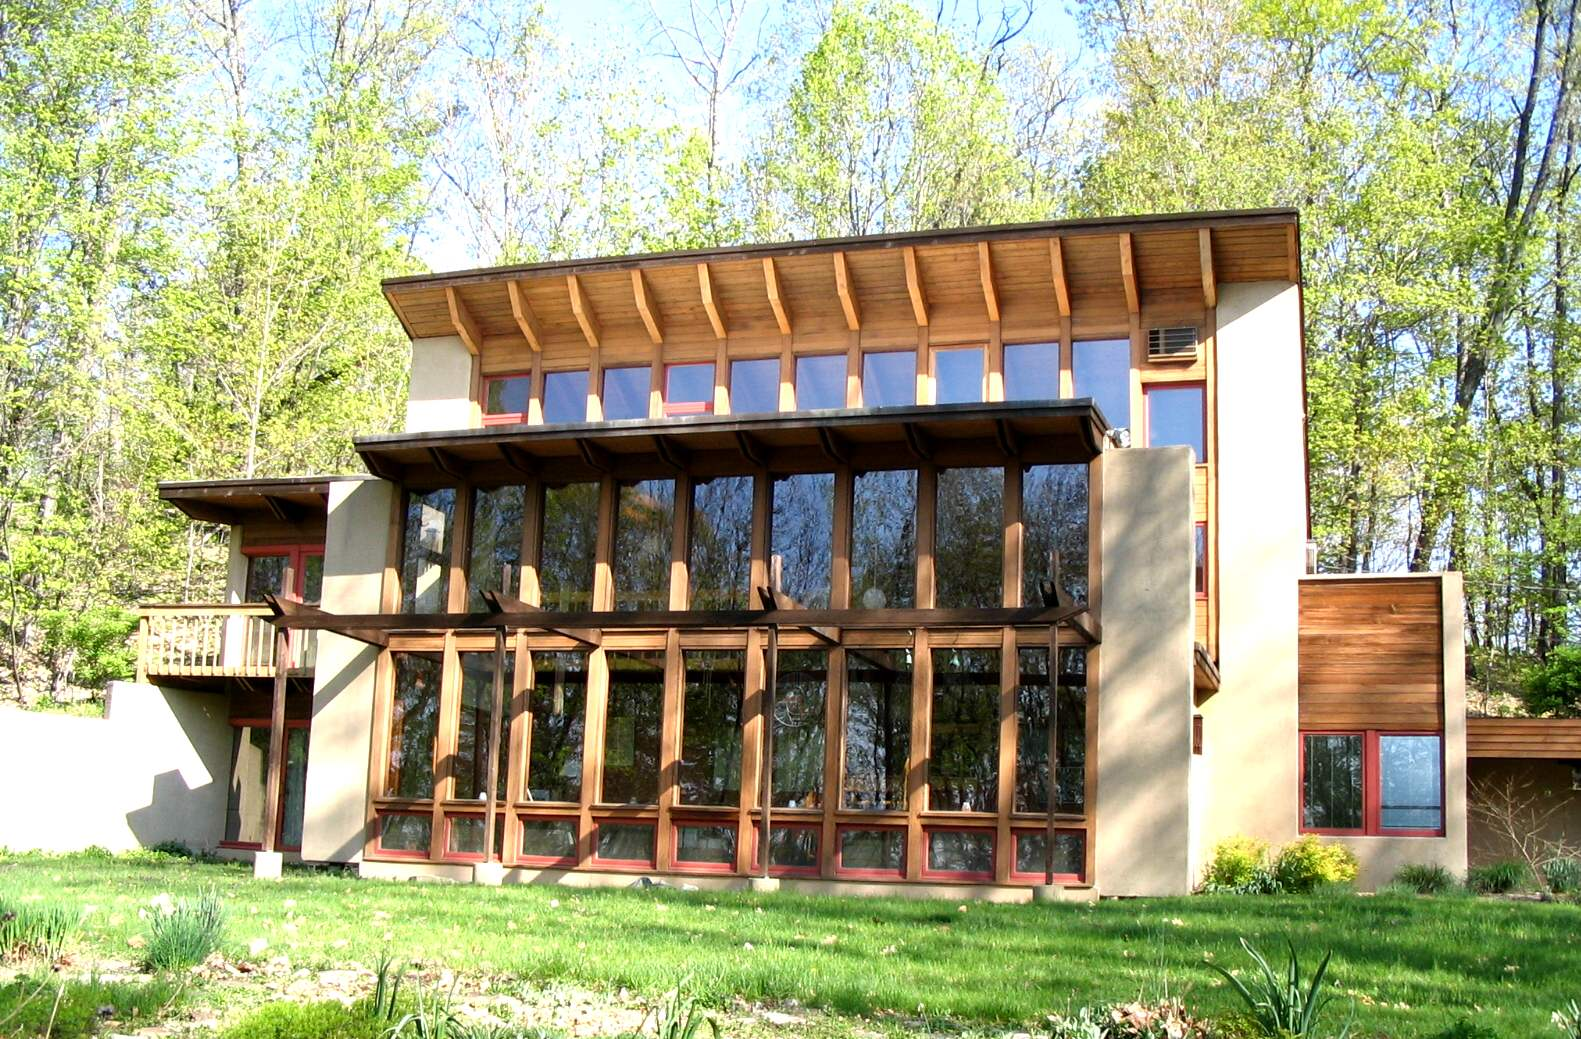 Passive solar home energysage for Solar energy house designs